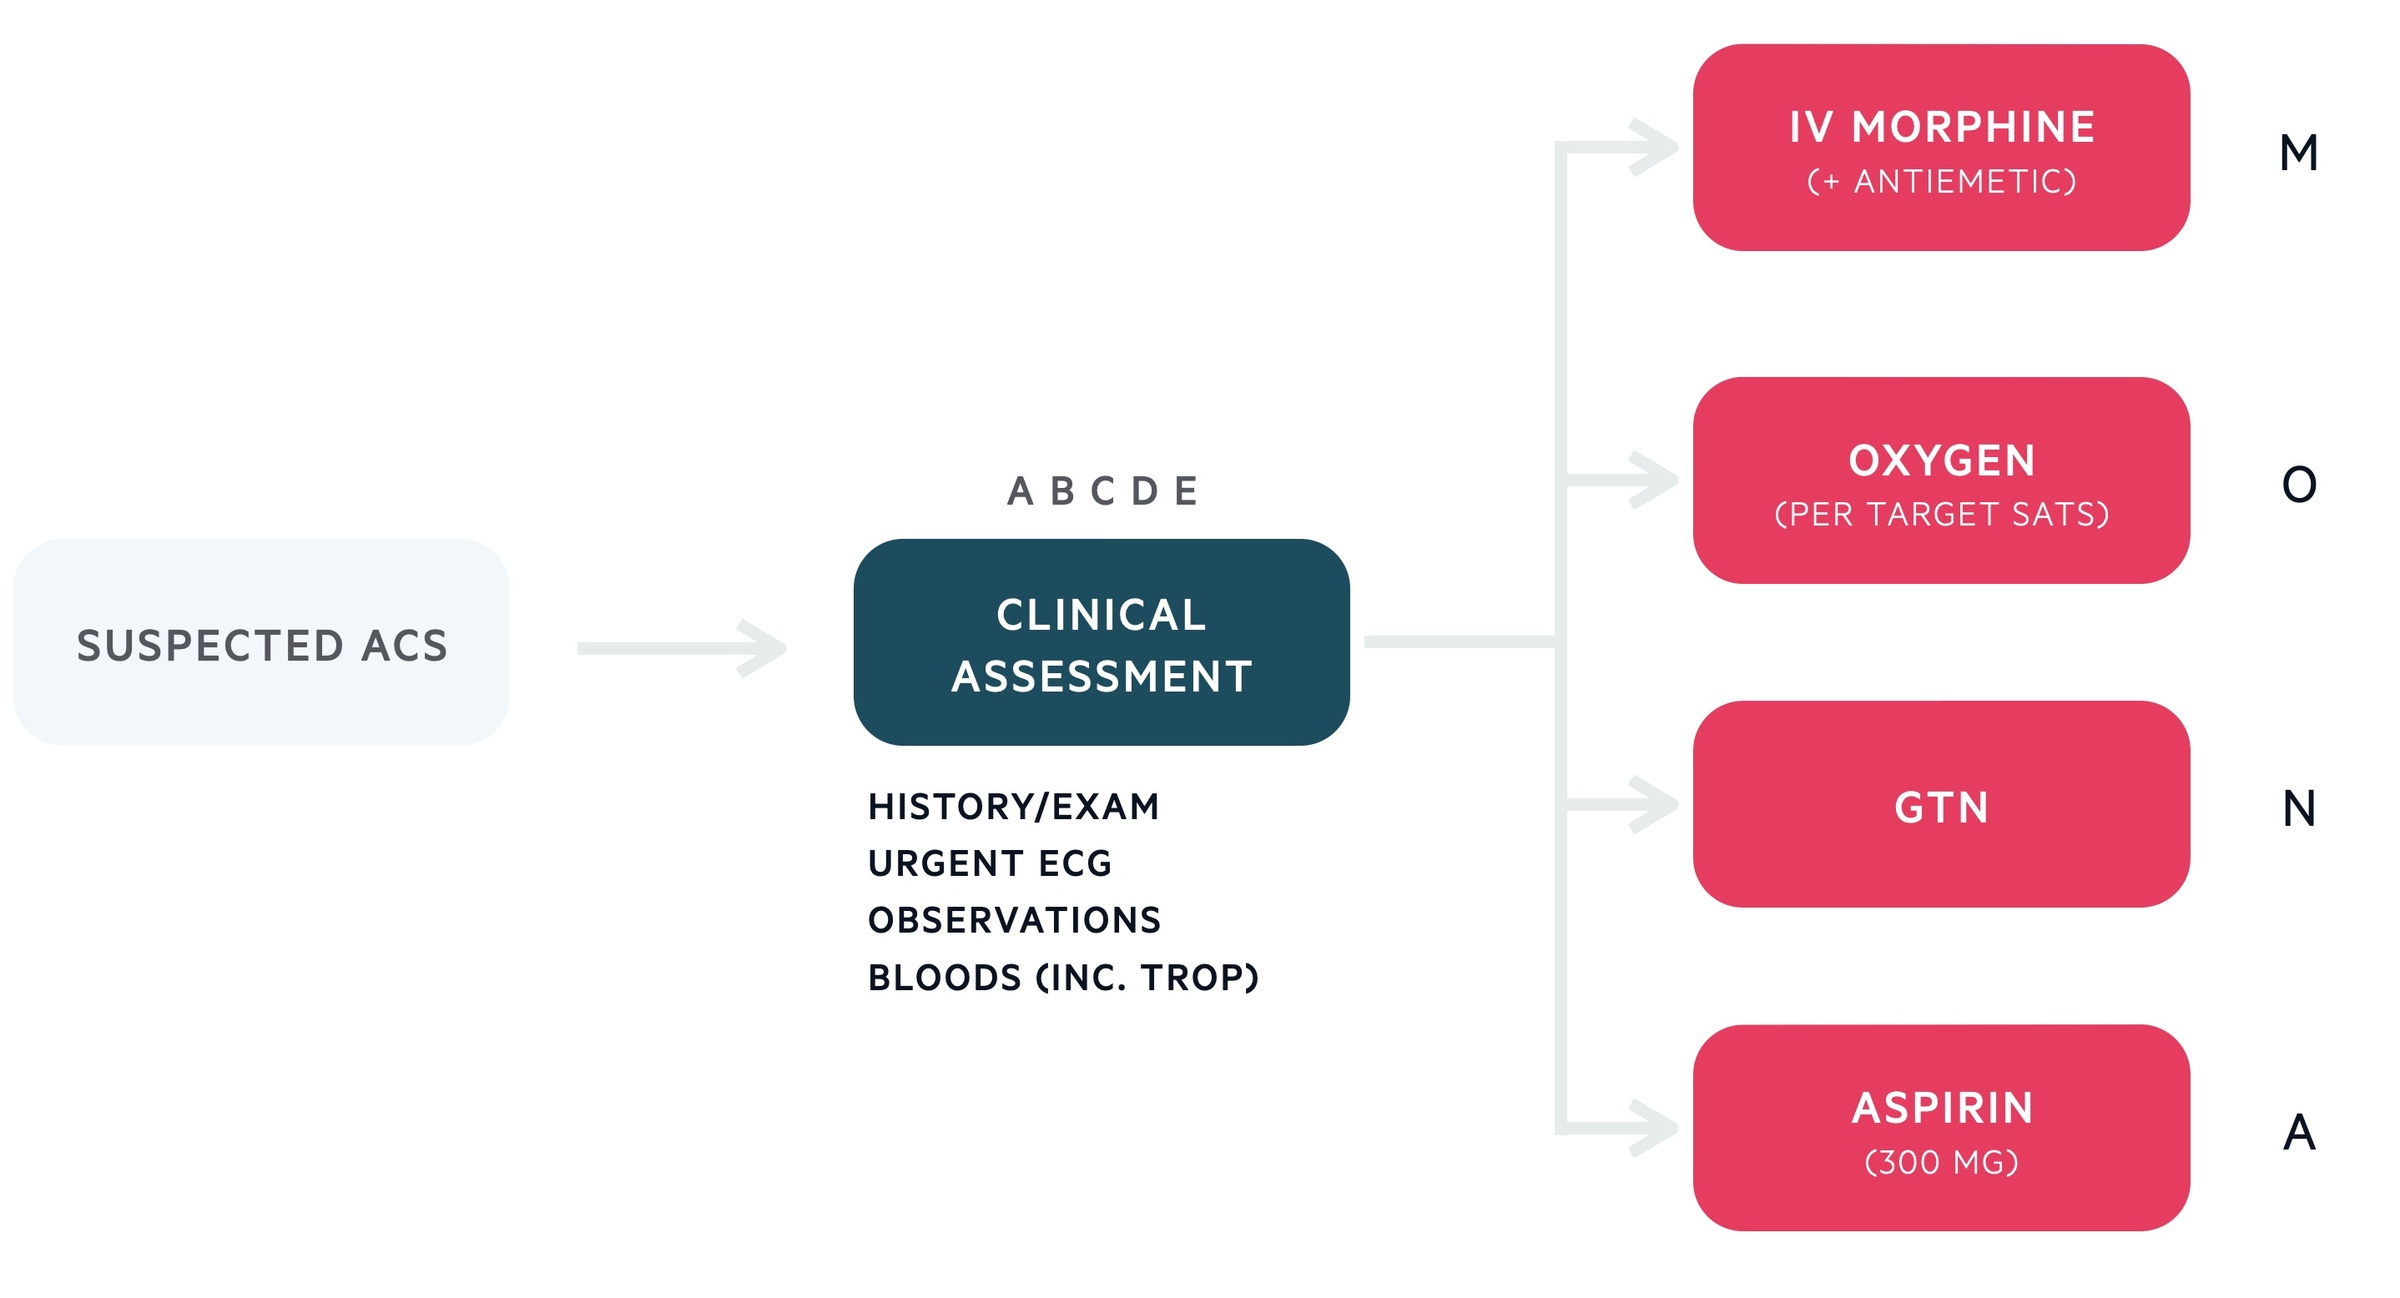 Initial management of acute coronary syndrome (ACS)